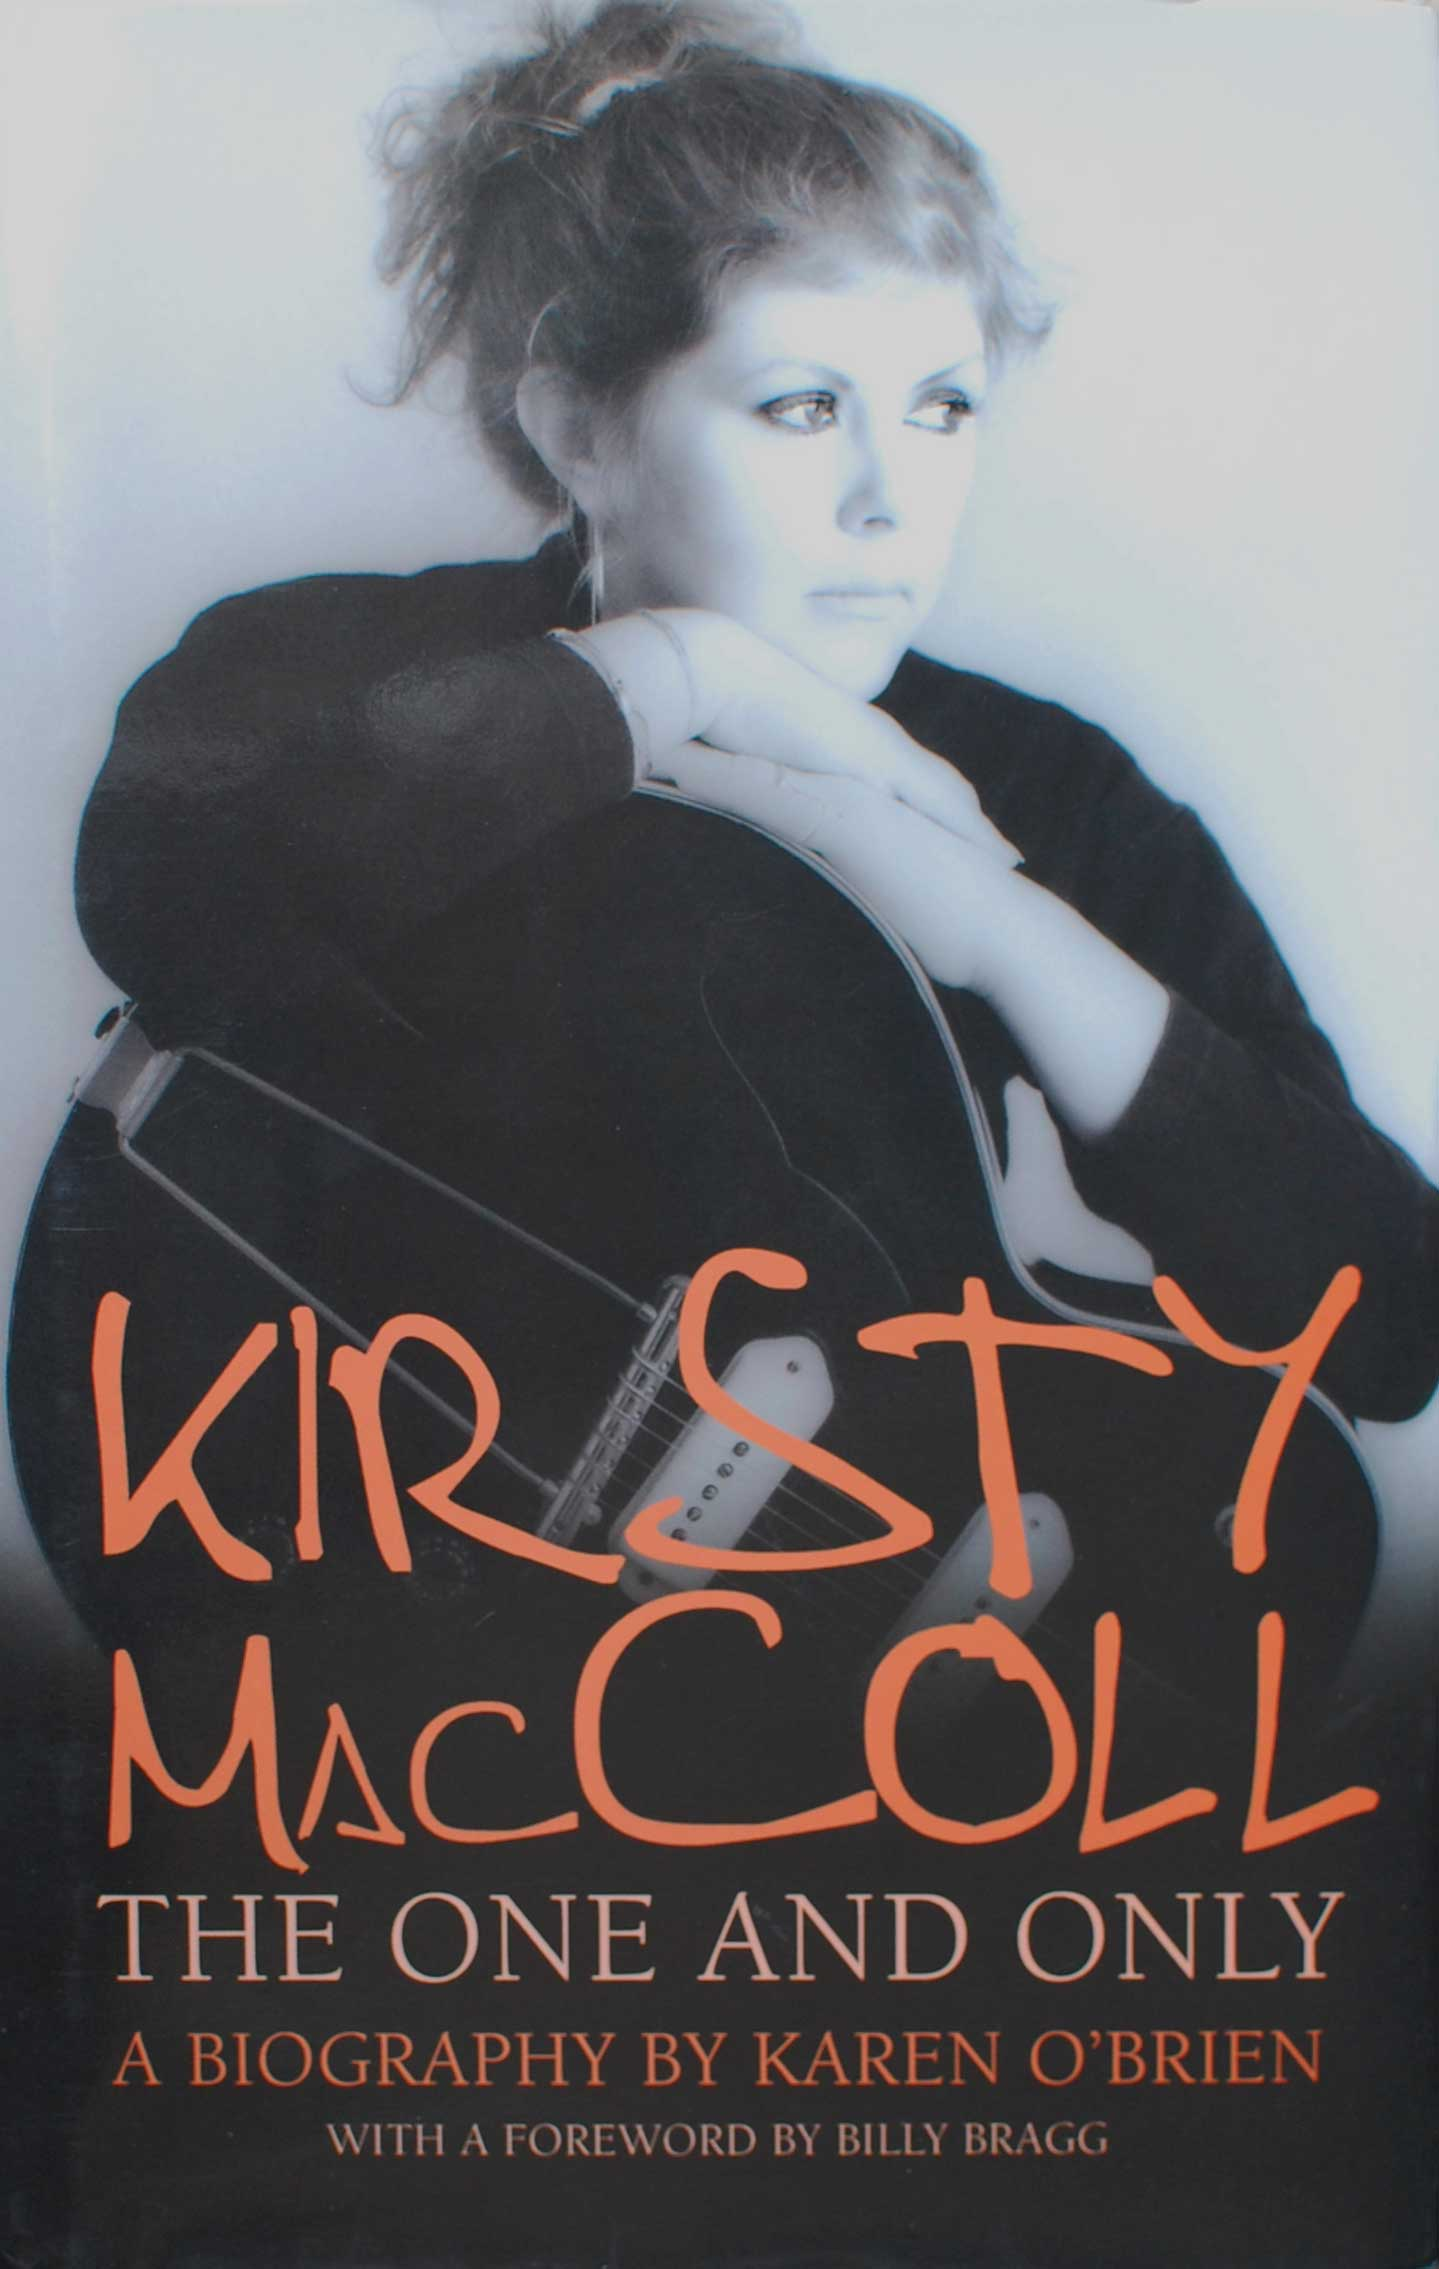 Kirsty MacColl, The One and Only, by Karen O'Brien